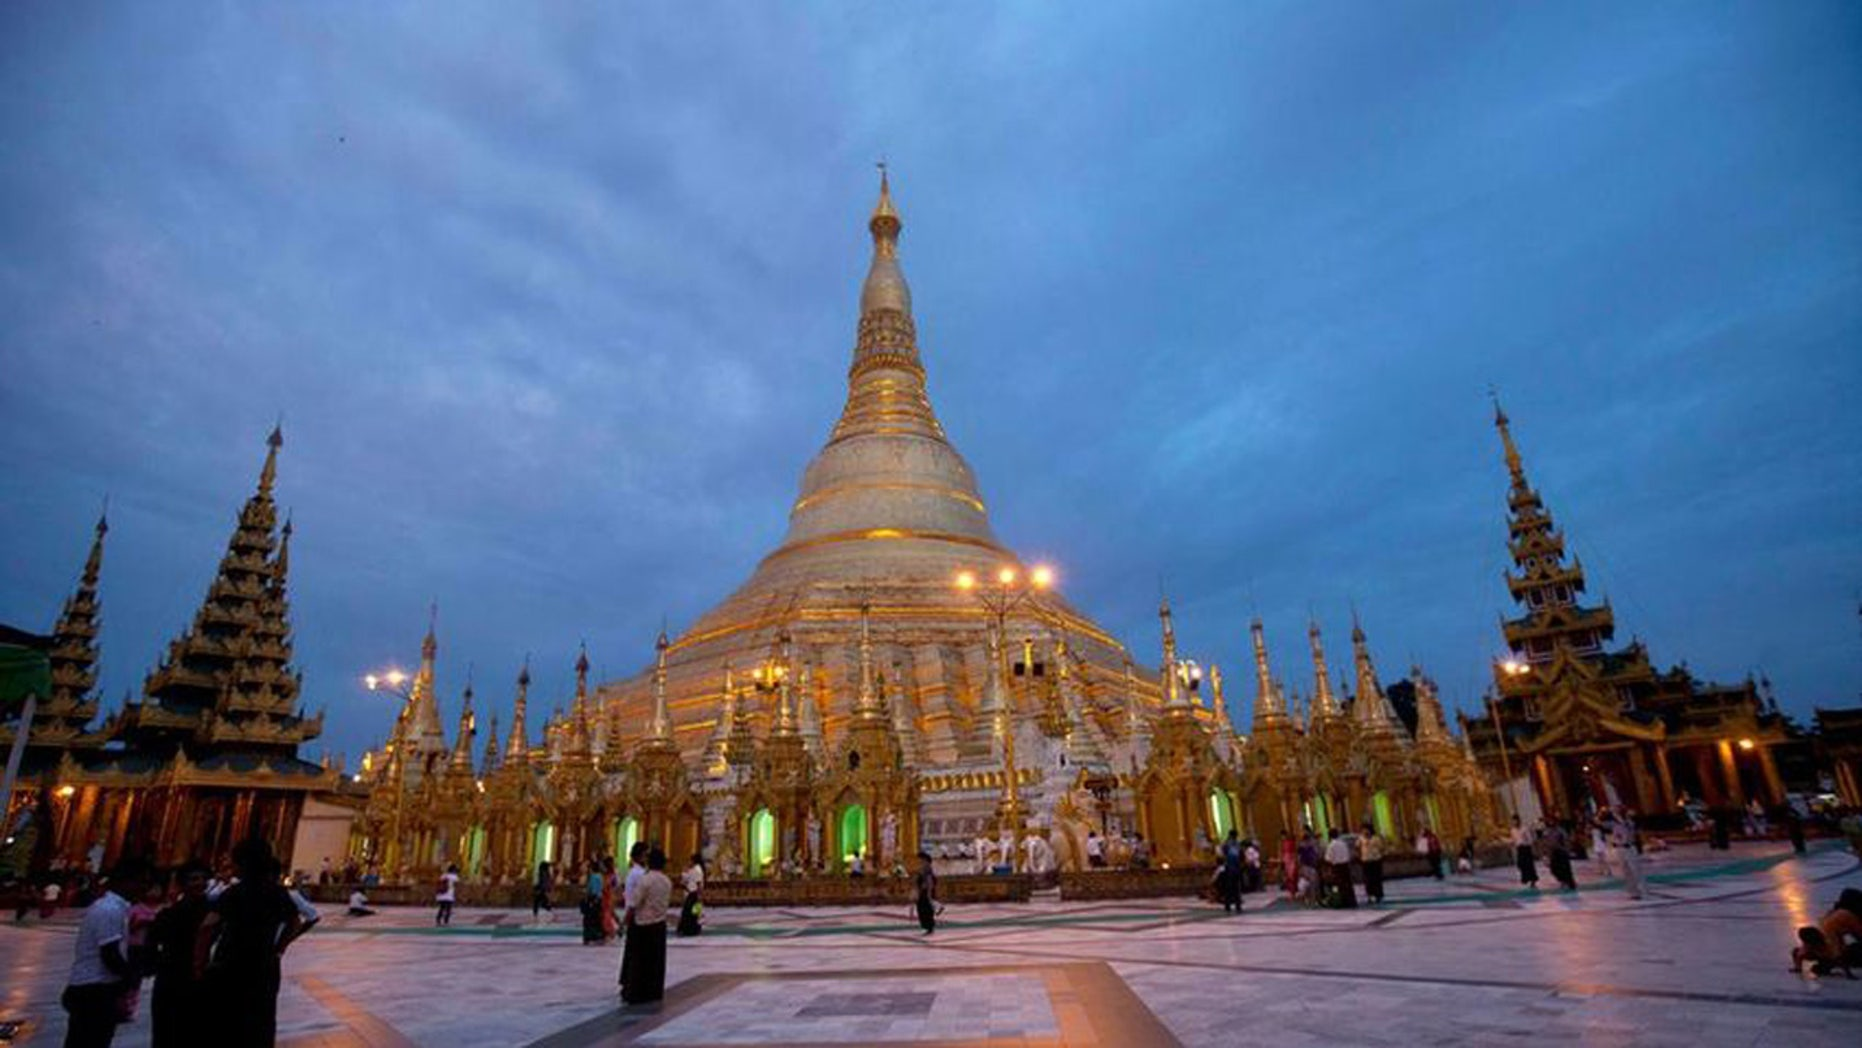 Buddhist devotees visit Myanmar's famous Shwedagon Pagoda as its illuminated in Yangon, Myanmar on Aug. 13, 2014.